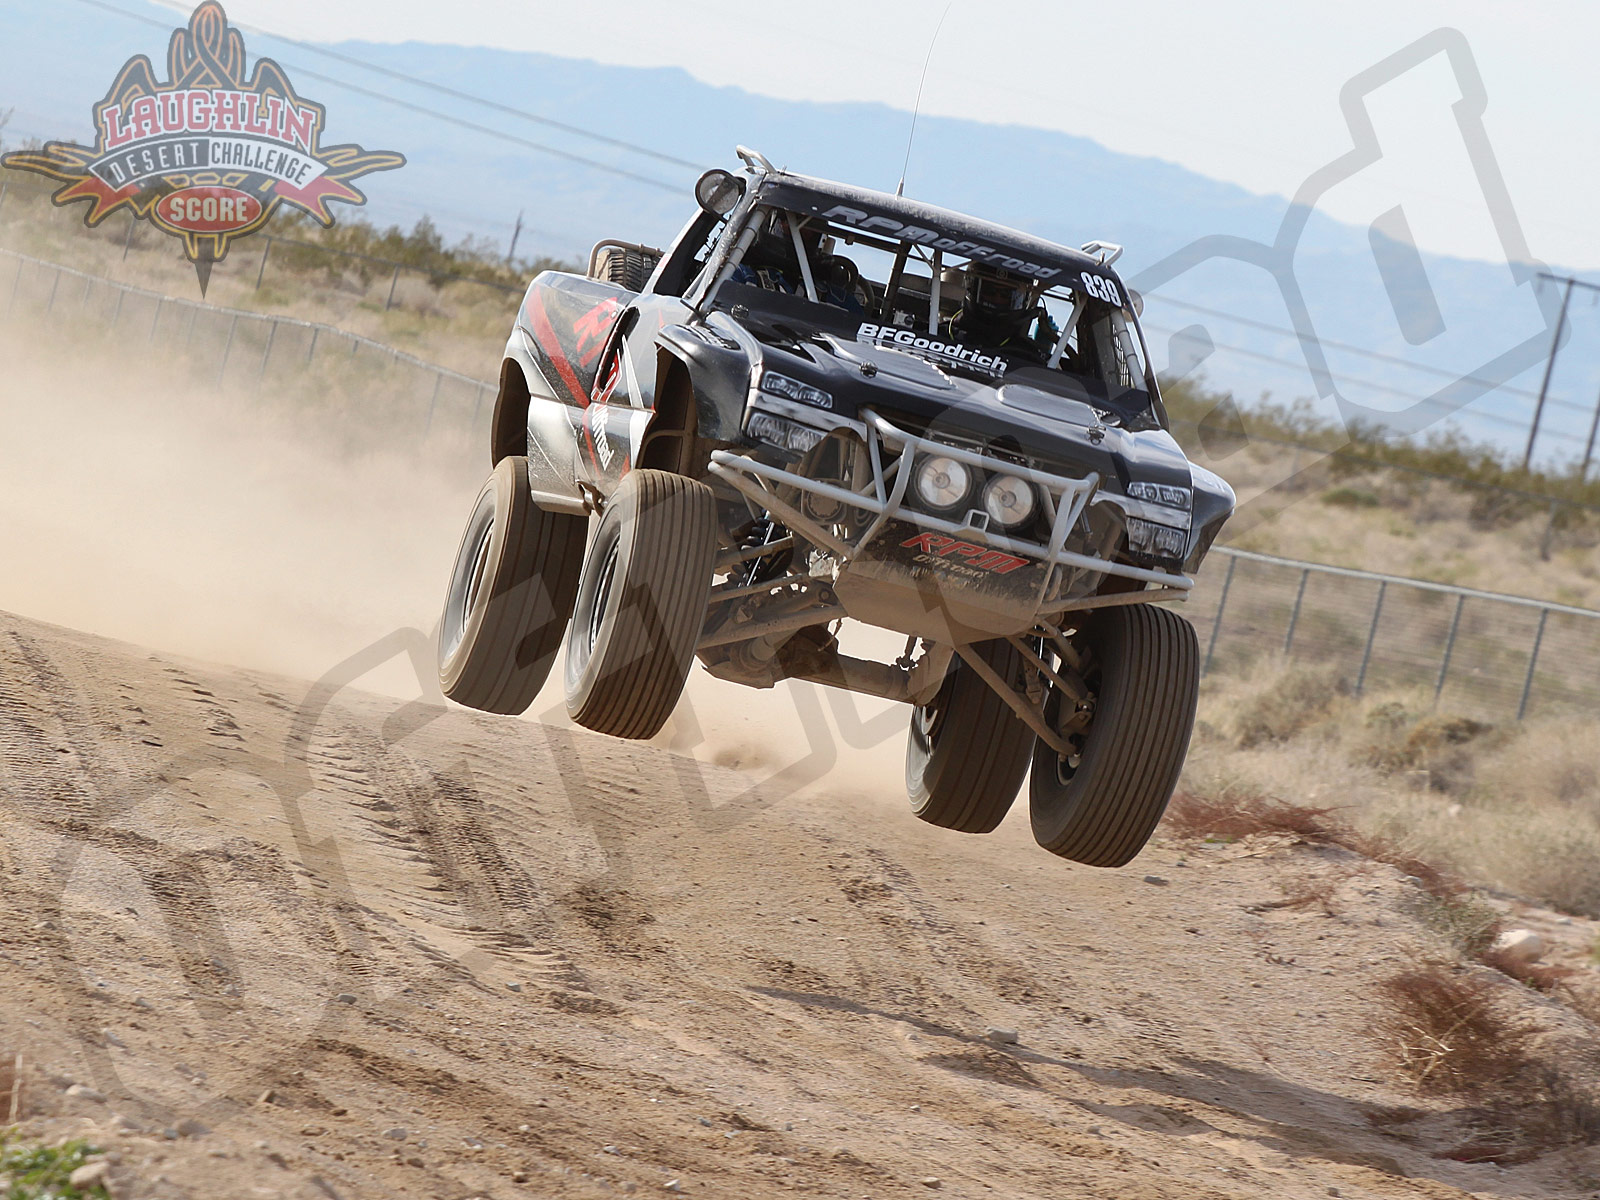 012011or 6591+2011 score laughlin desert challenge+truck classes